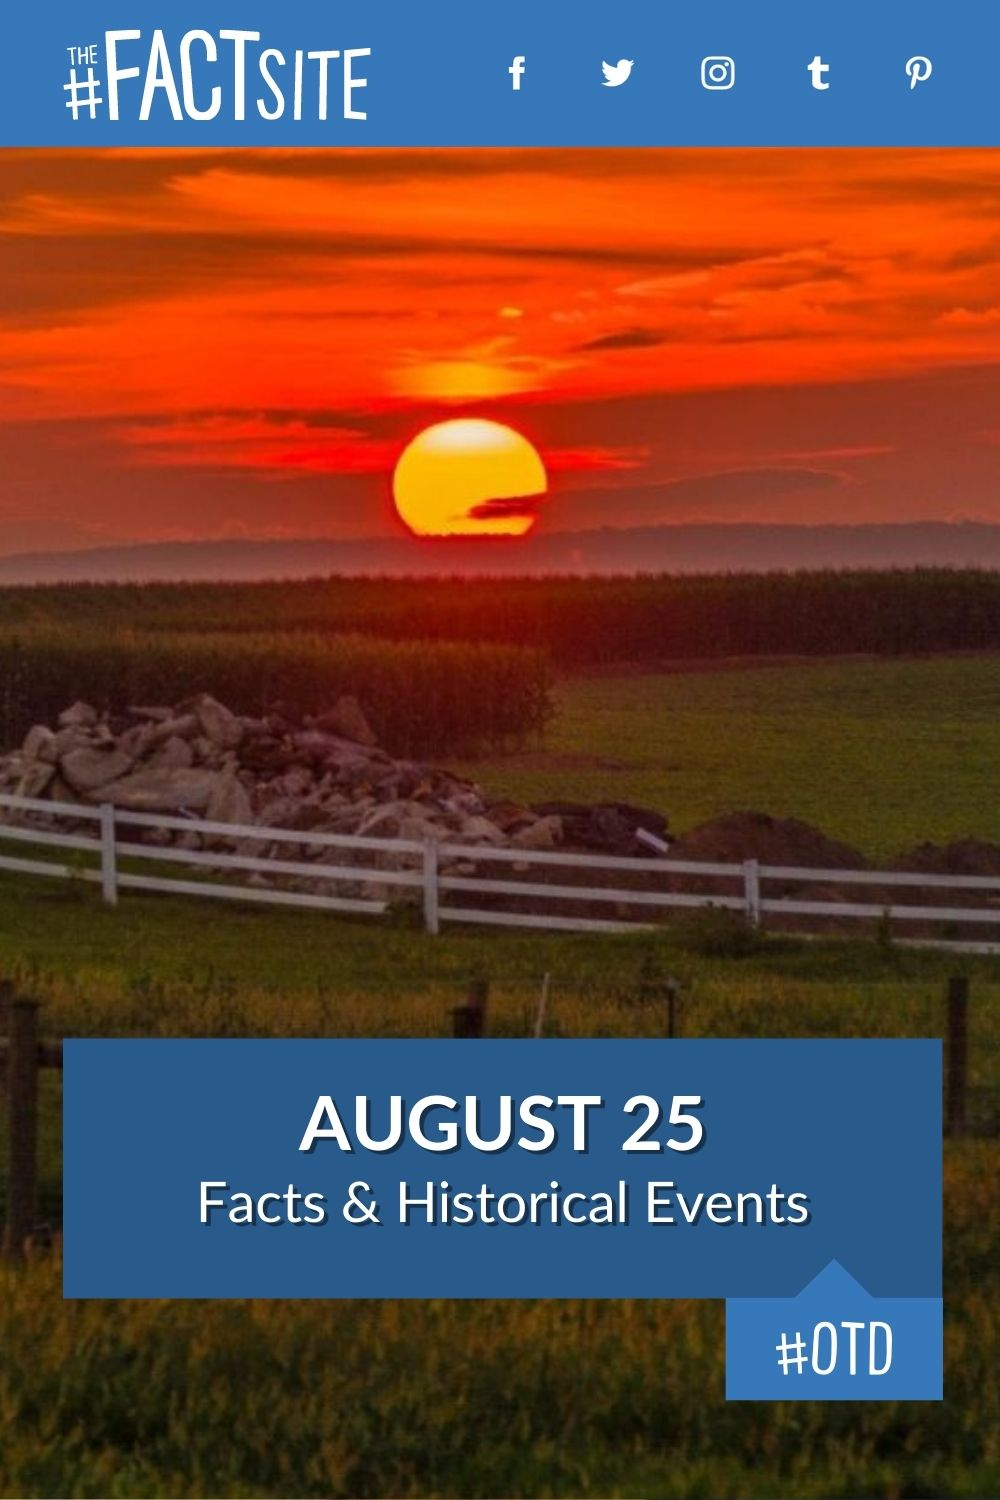 Facts & Historic Events That Happened on August 25